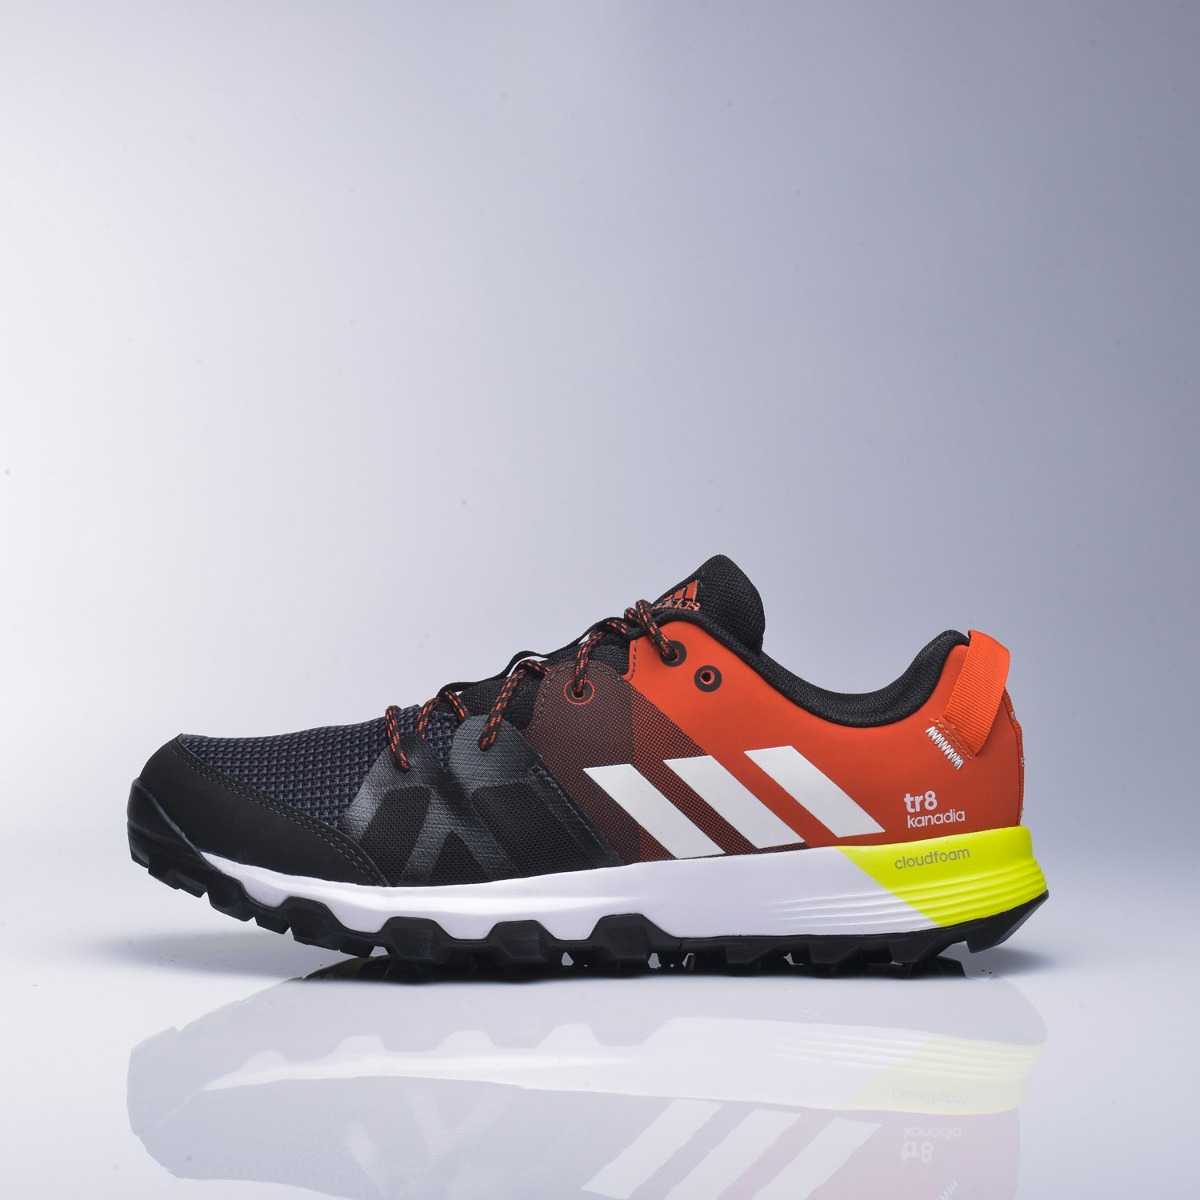 Open 8 Kanadia Adidas Zapatillas Aq5843 Sports Tr NX0kwO8nP